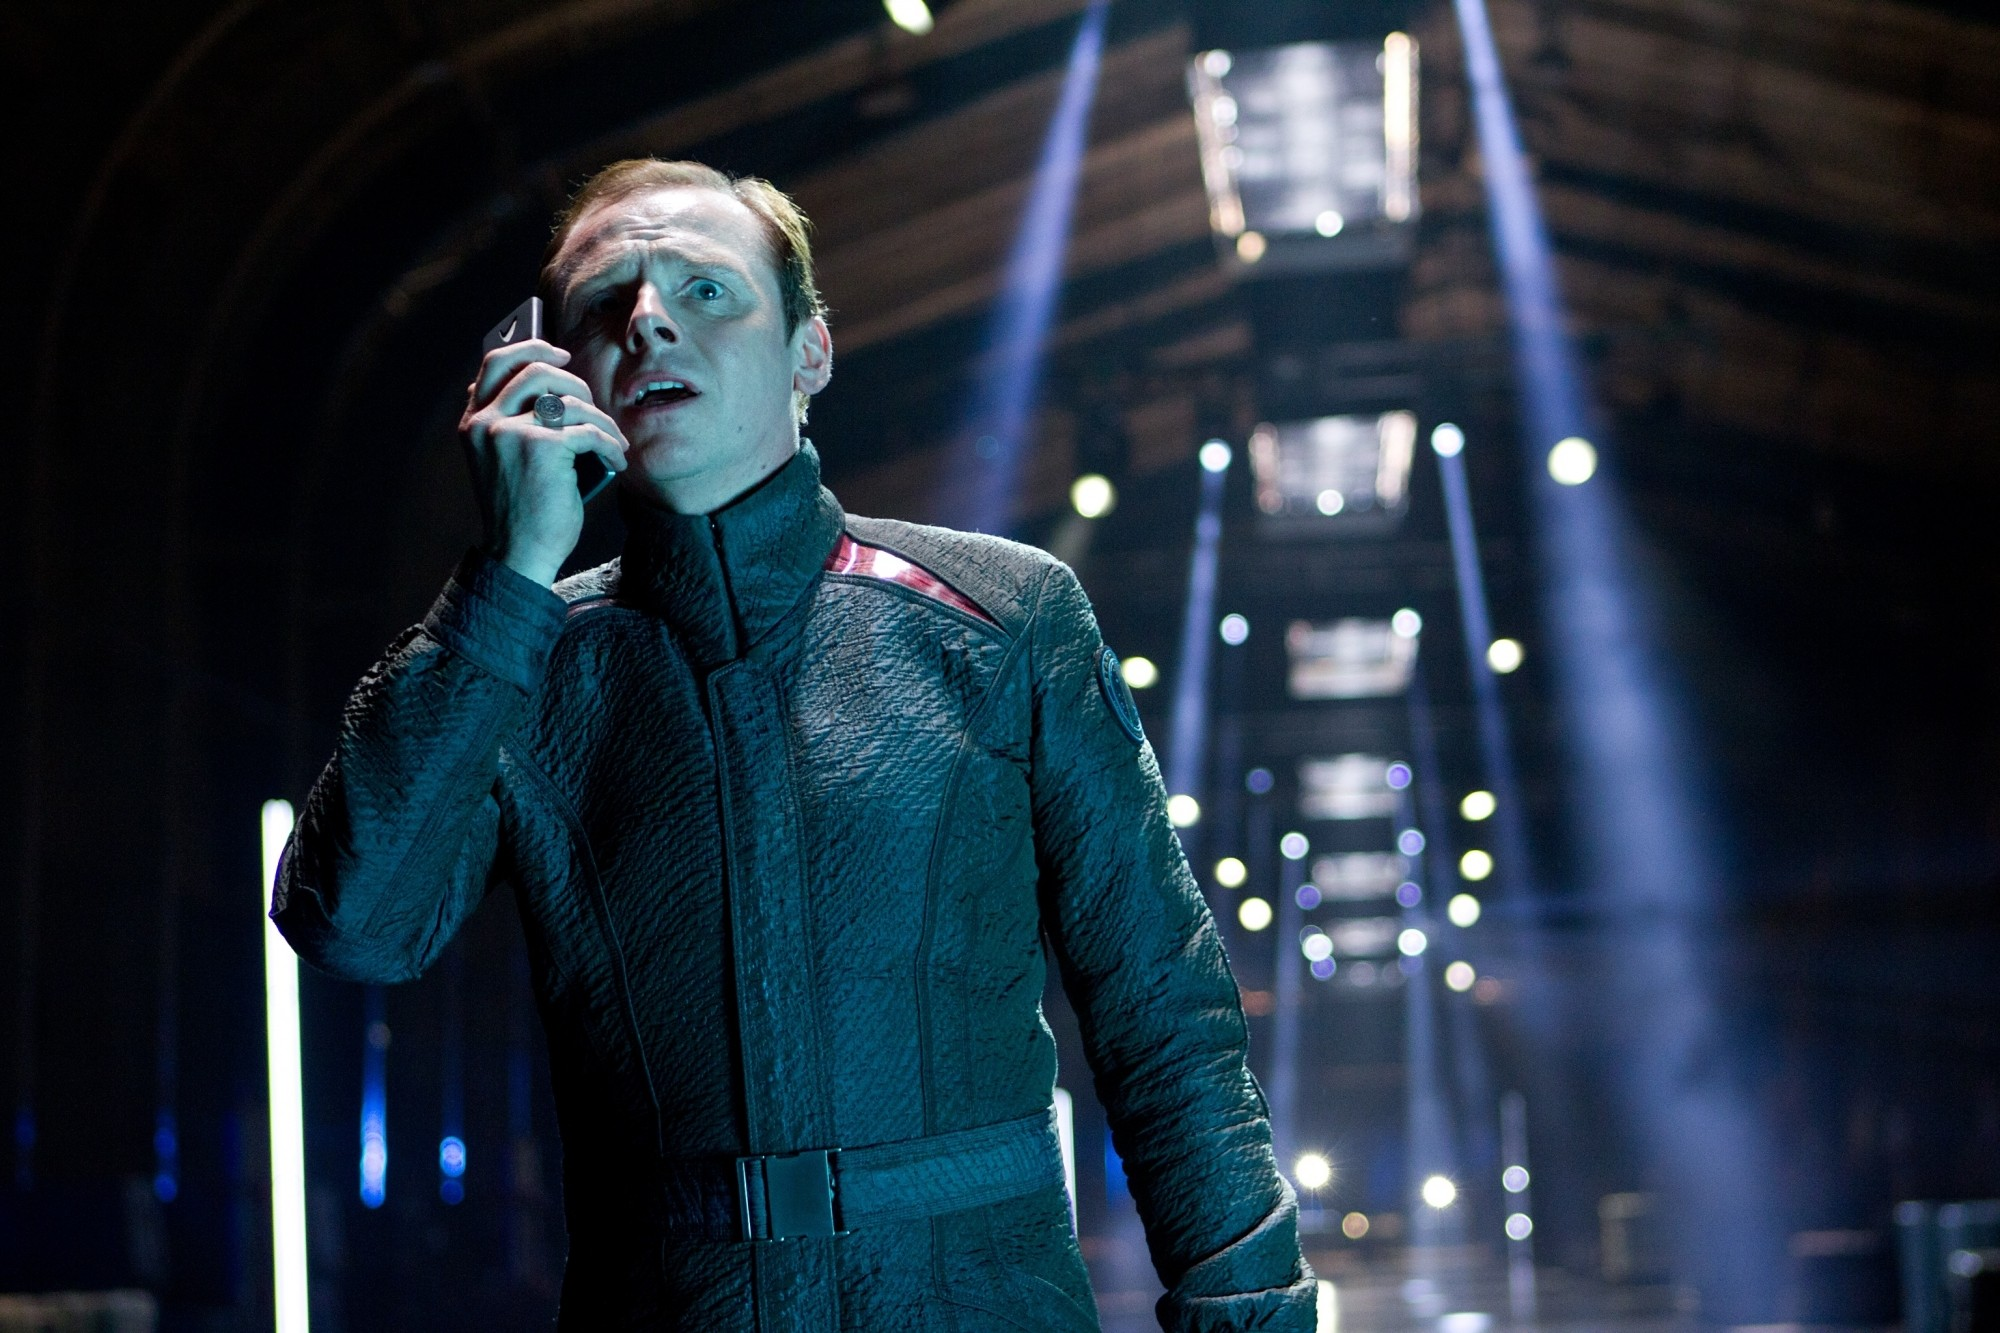 Simon Pegg as Scotty in Star Trek Into Darkness